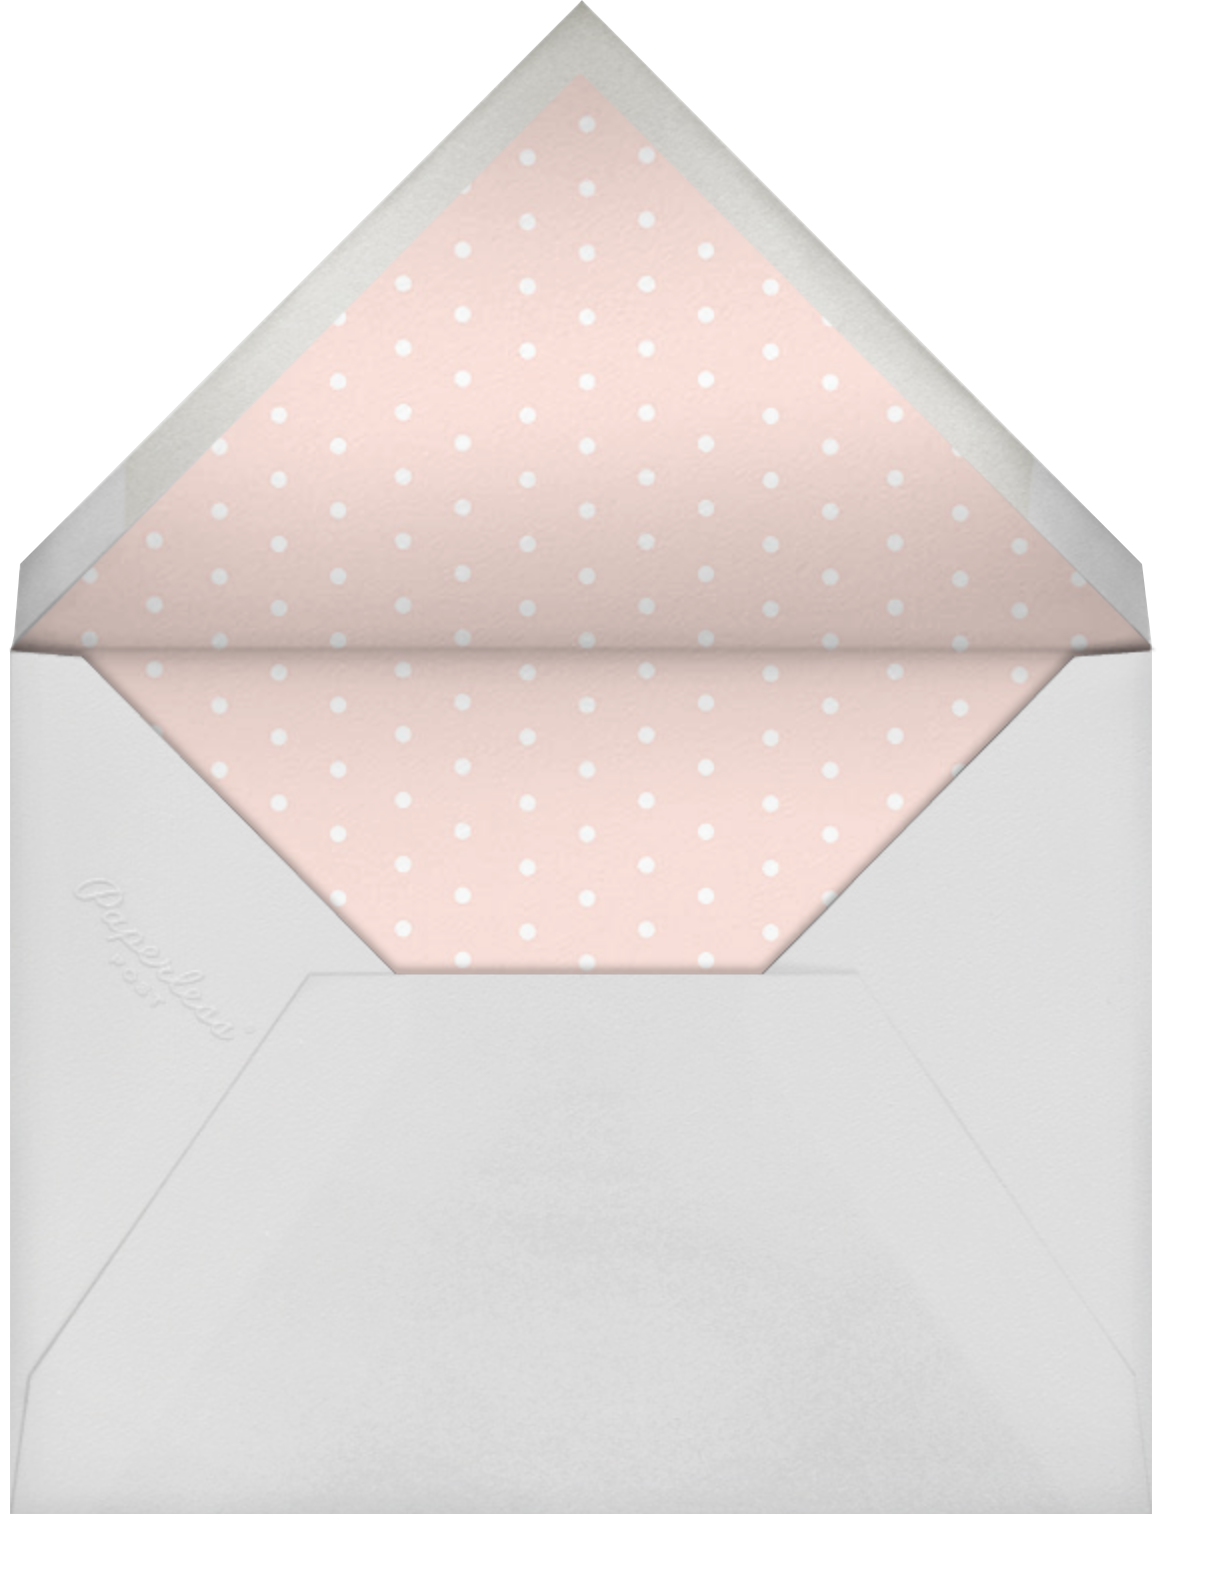 Ballet Day - Rifle Paper Co. - Kids' birthday - envelope back